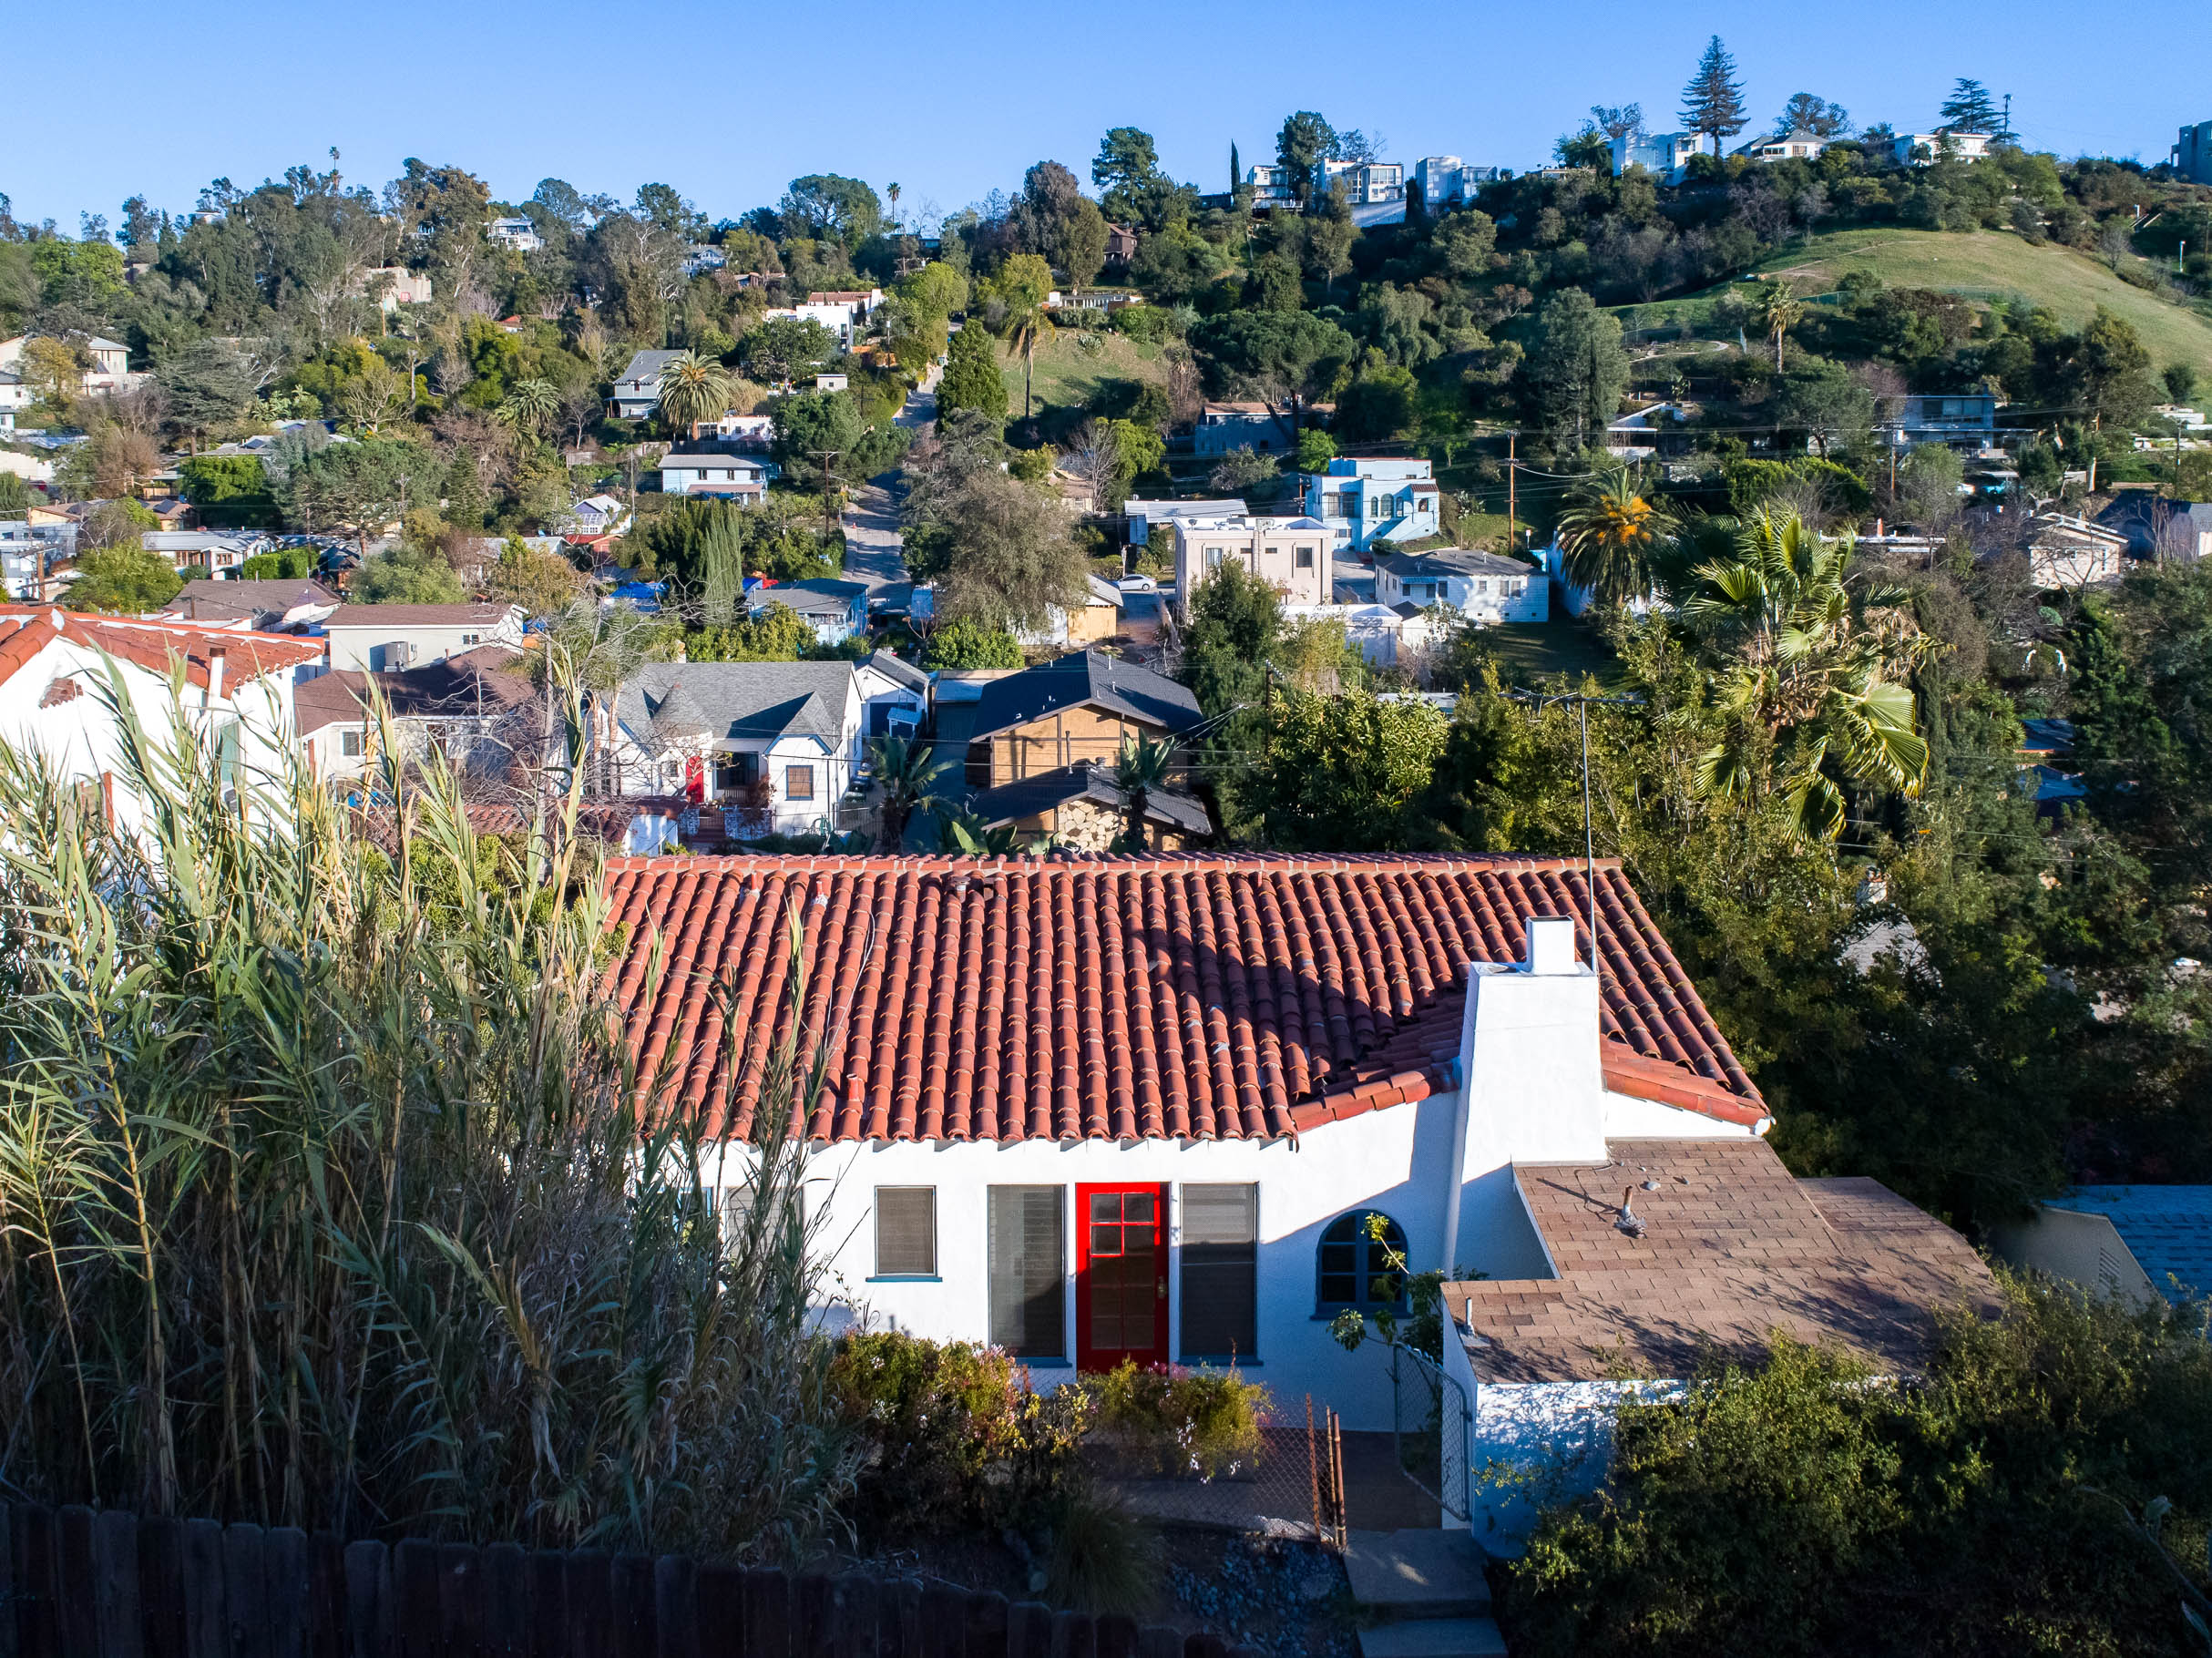 For those who want to live in Echo Park but feel they are priced out - here's your opportunity!